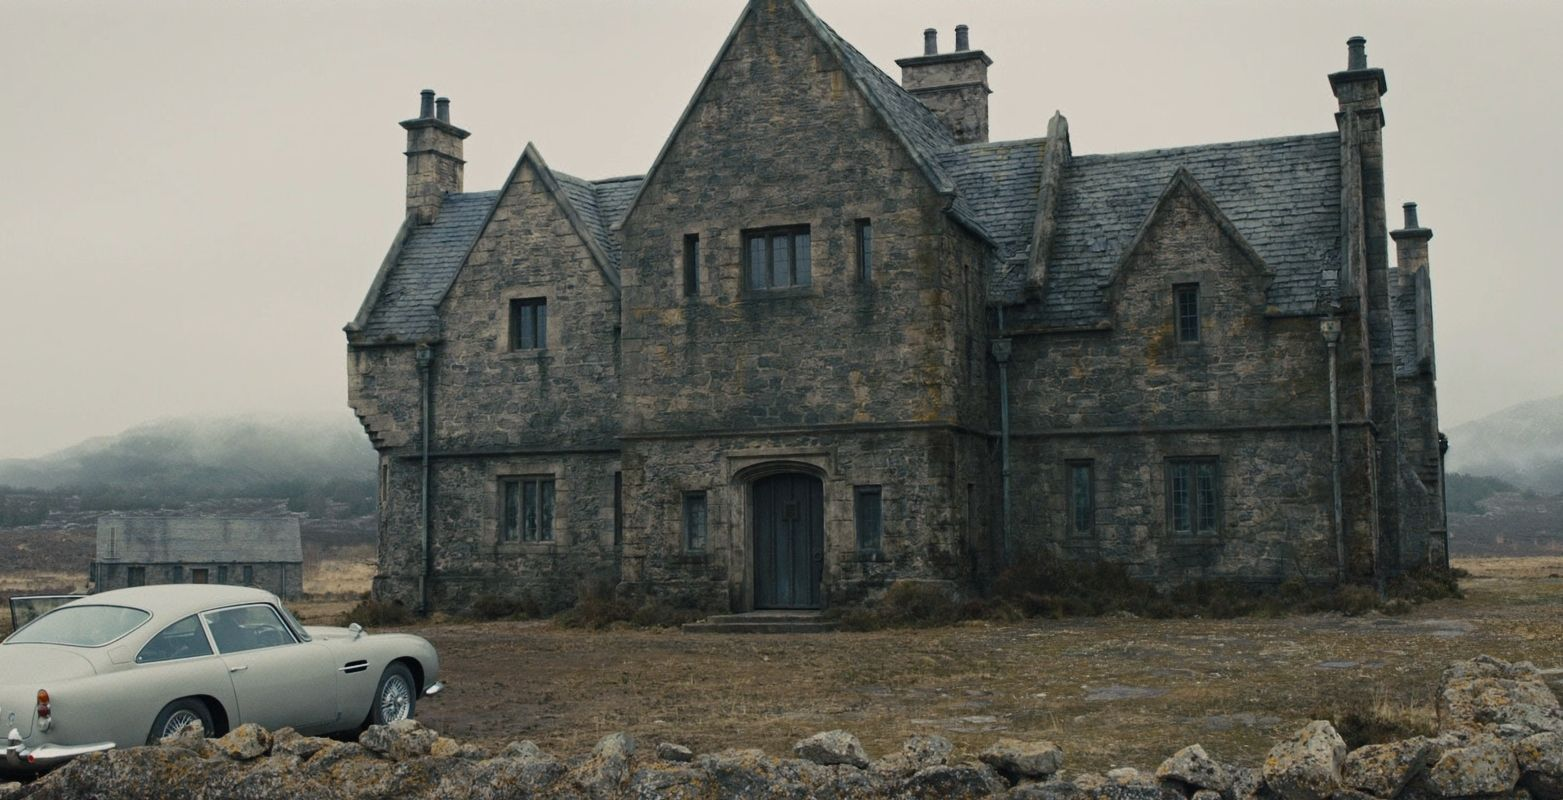 skyfall manor house residence of james bond as a child skyfall manor house residence of james bond as a child constructed